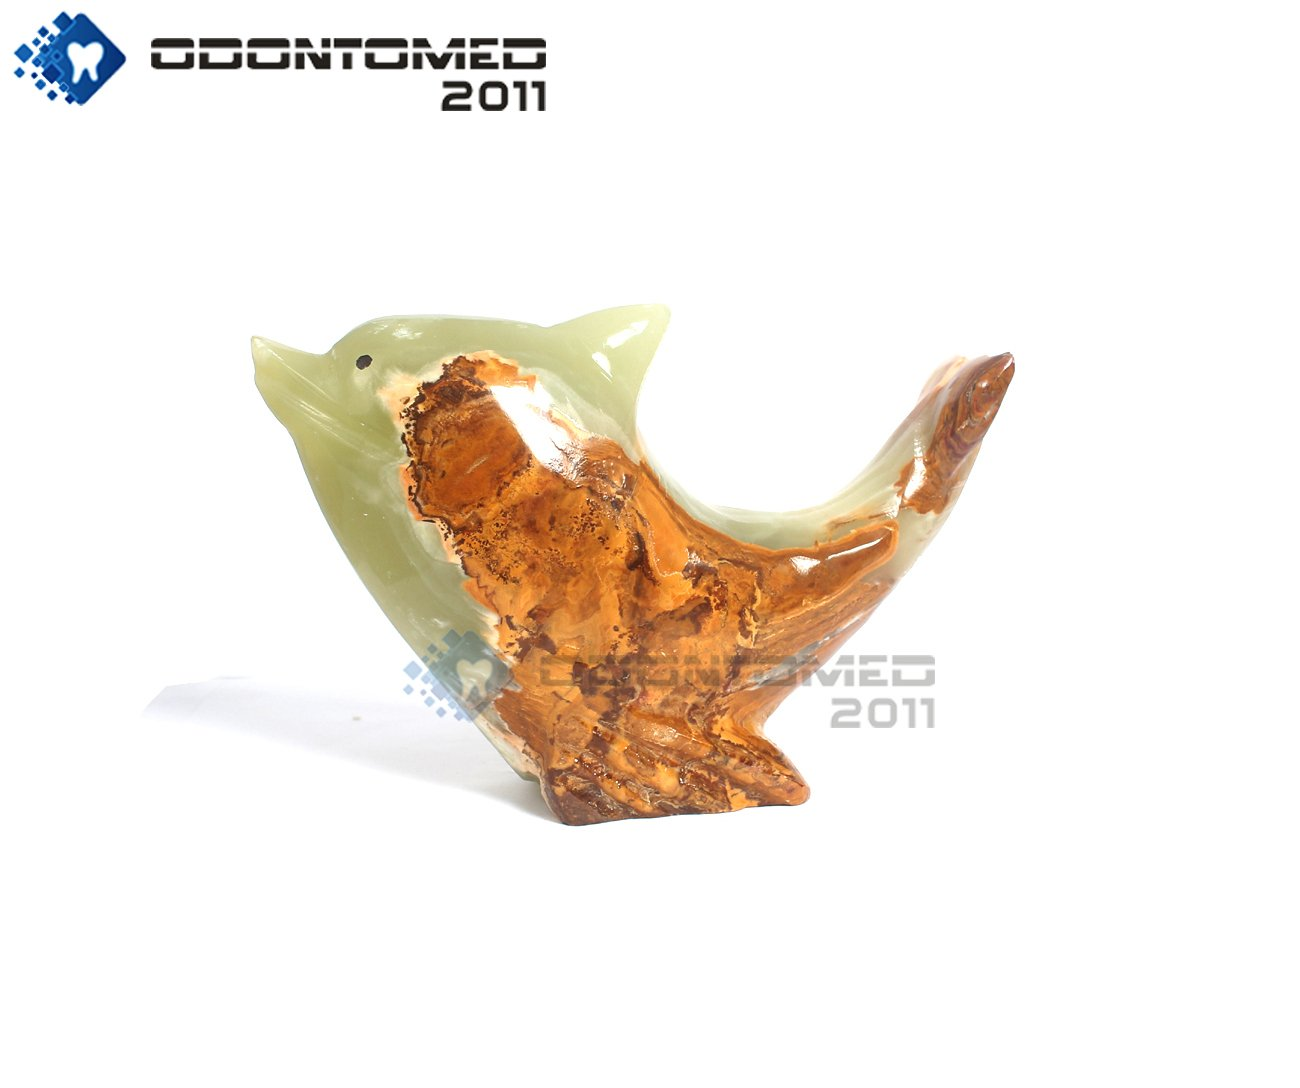 OdontoMed2011 Onyx Marble Animal Shape Dolphin Style HANDICRAFTS Hand Curved Home Decorative